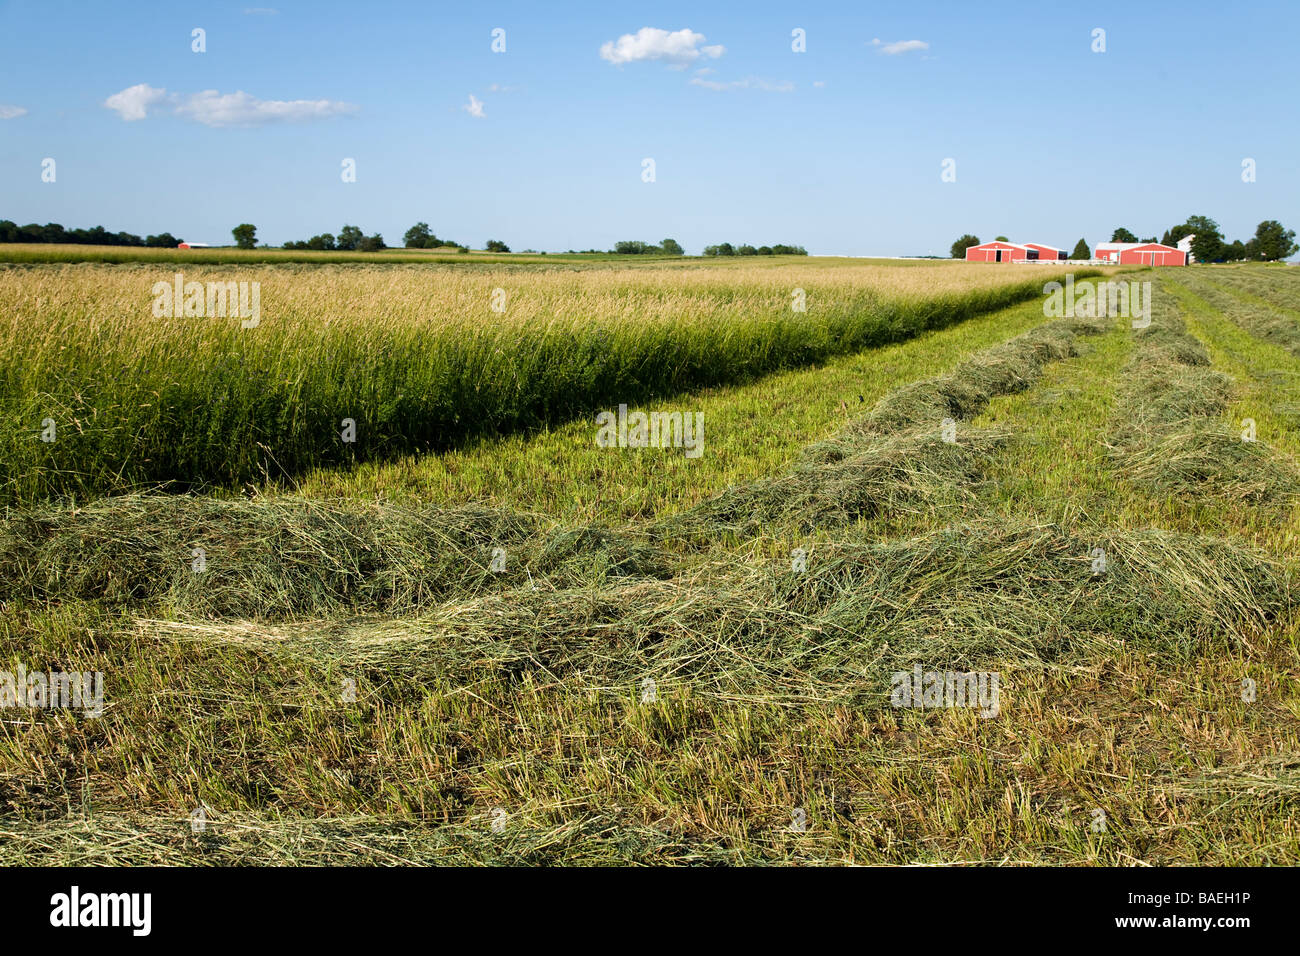 ILLINOIS DeKalb Freshly mowed hay raked into rows in agricultural field farm buildings in background - Stock Image